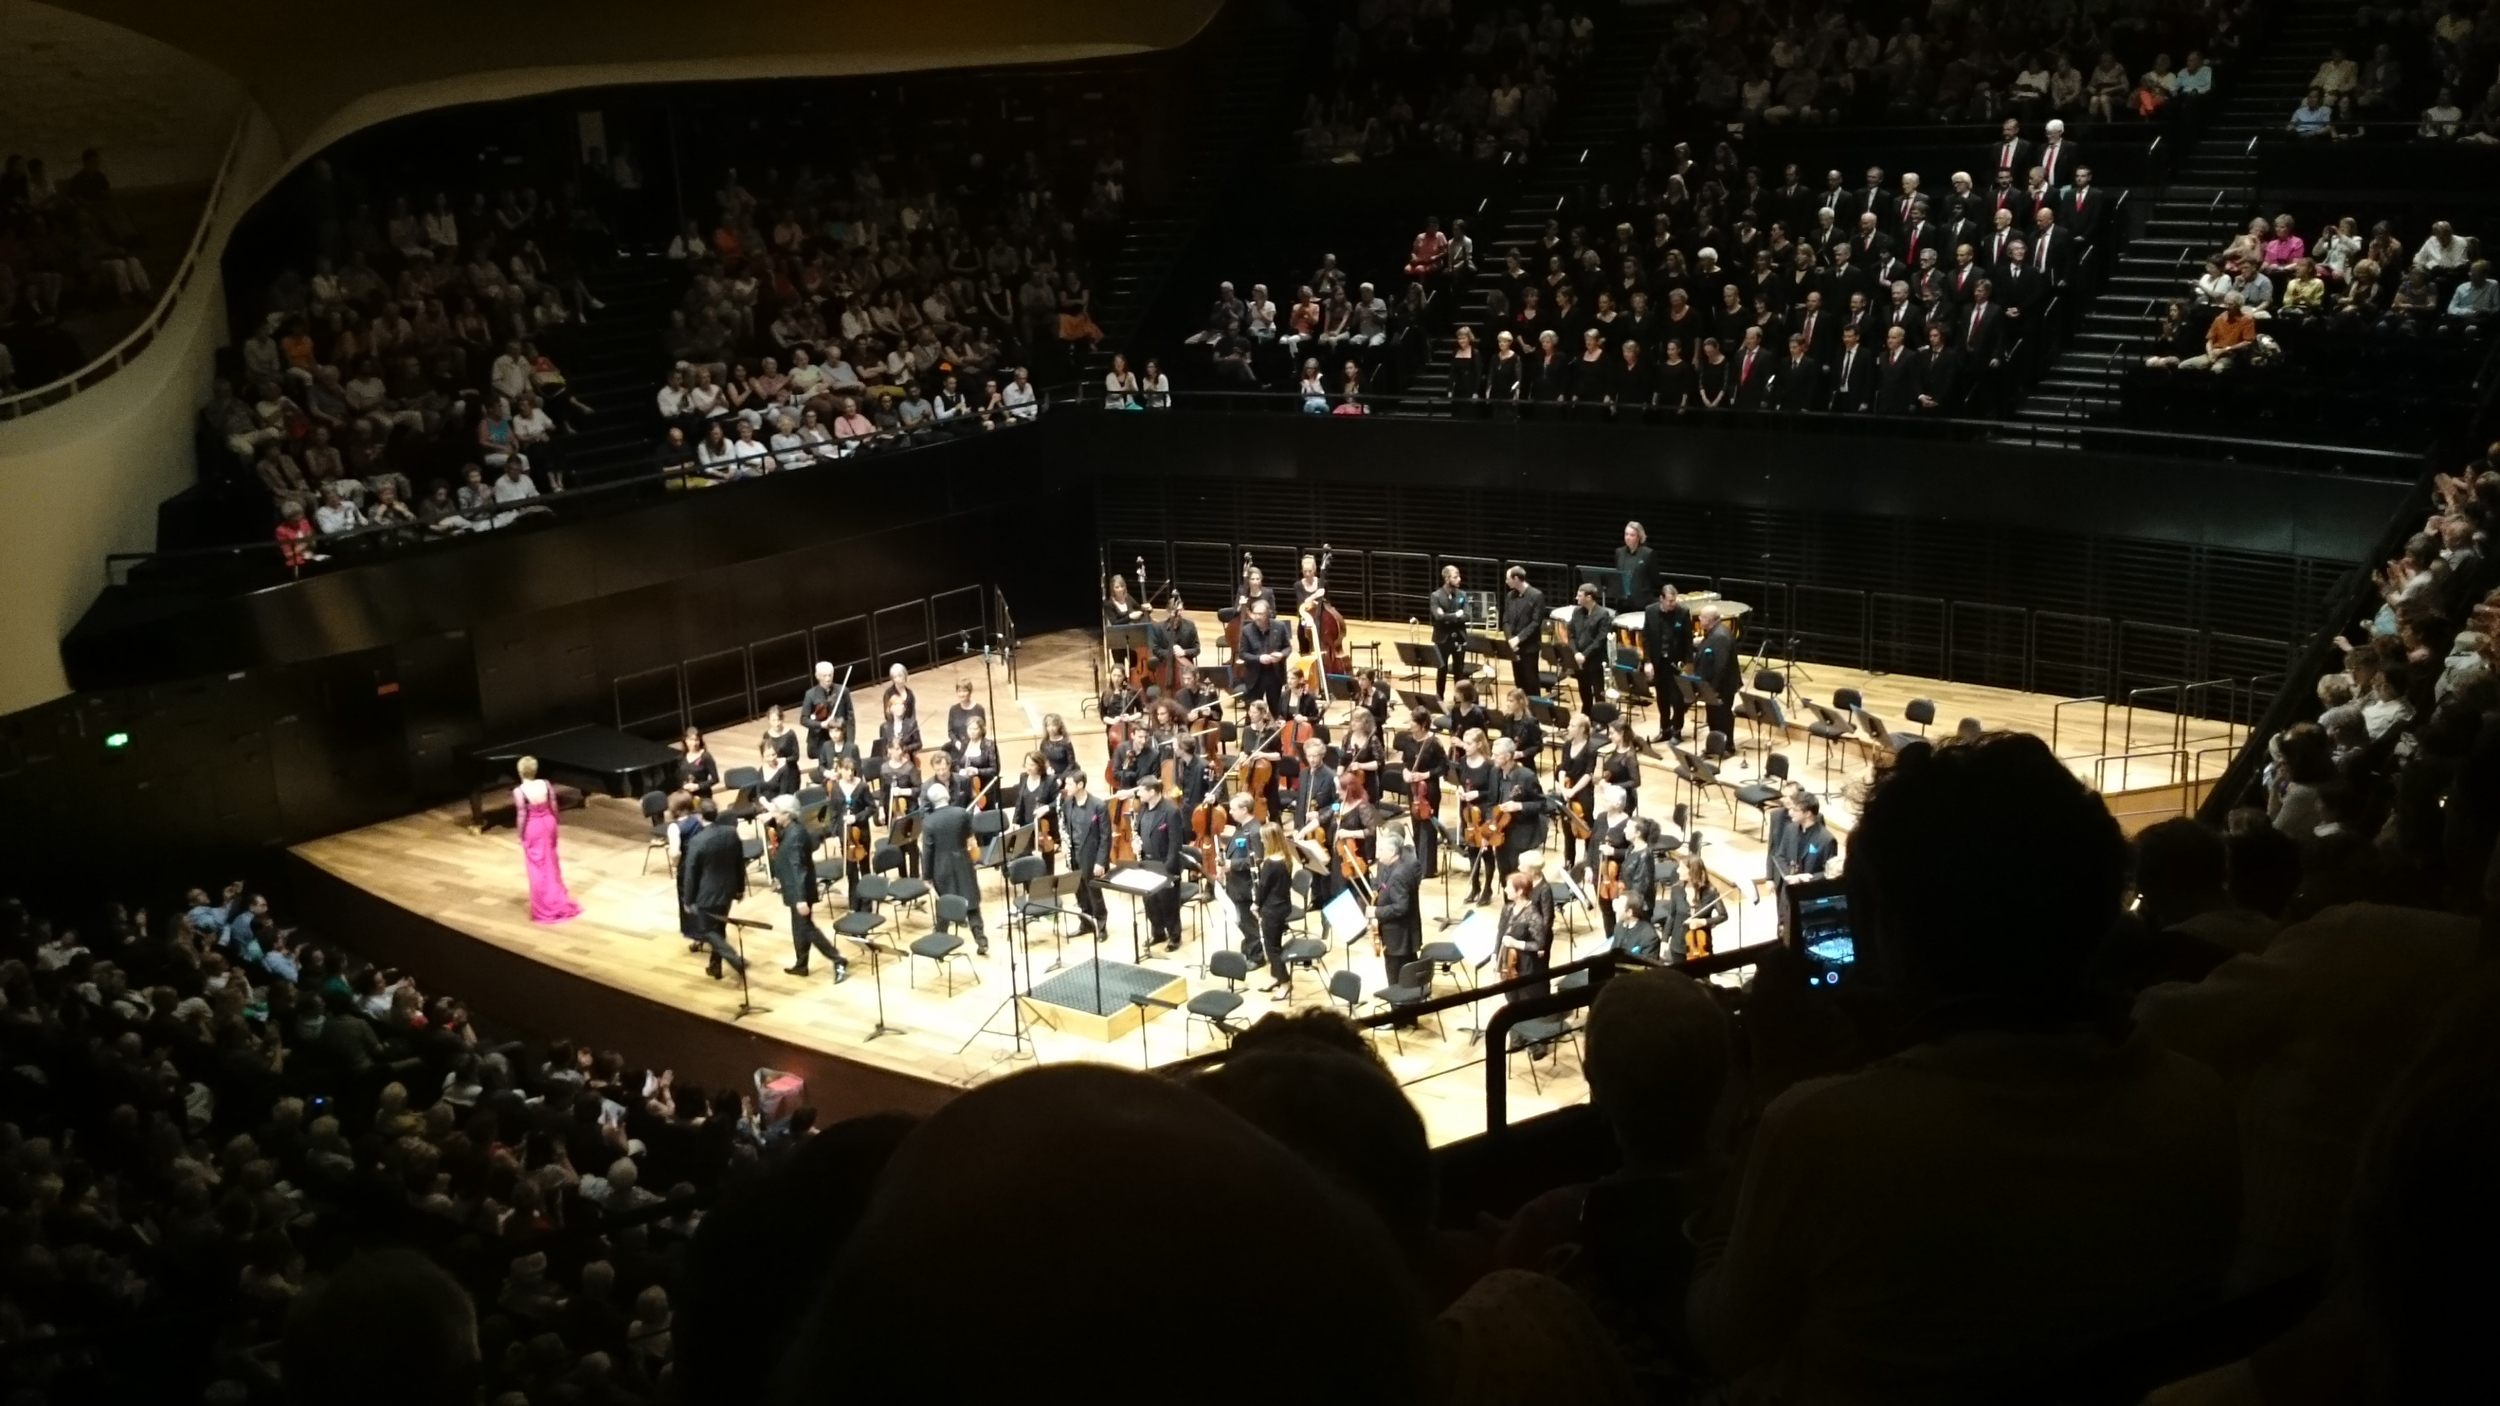 Beethoven and Mozart, but really I just went to see the auditorium design